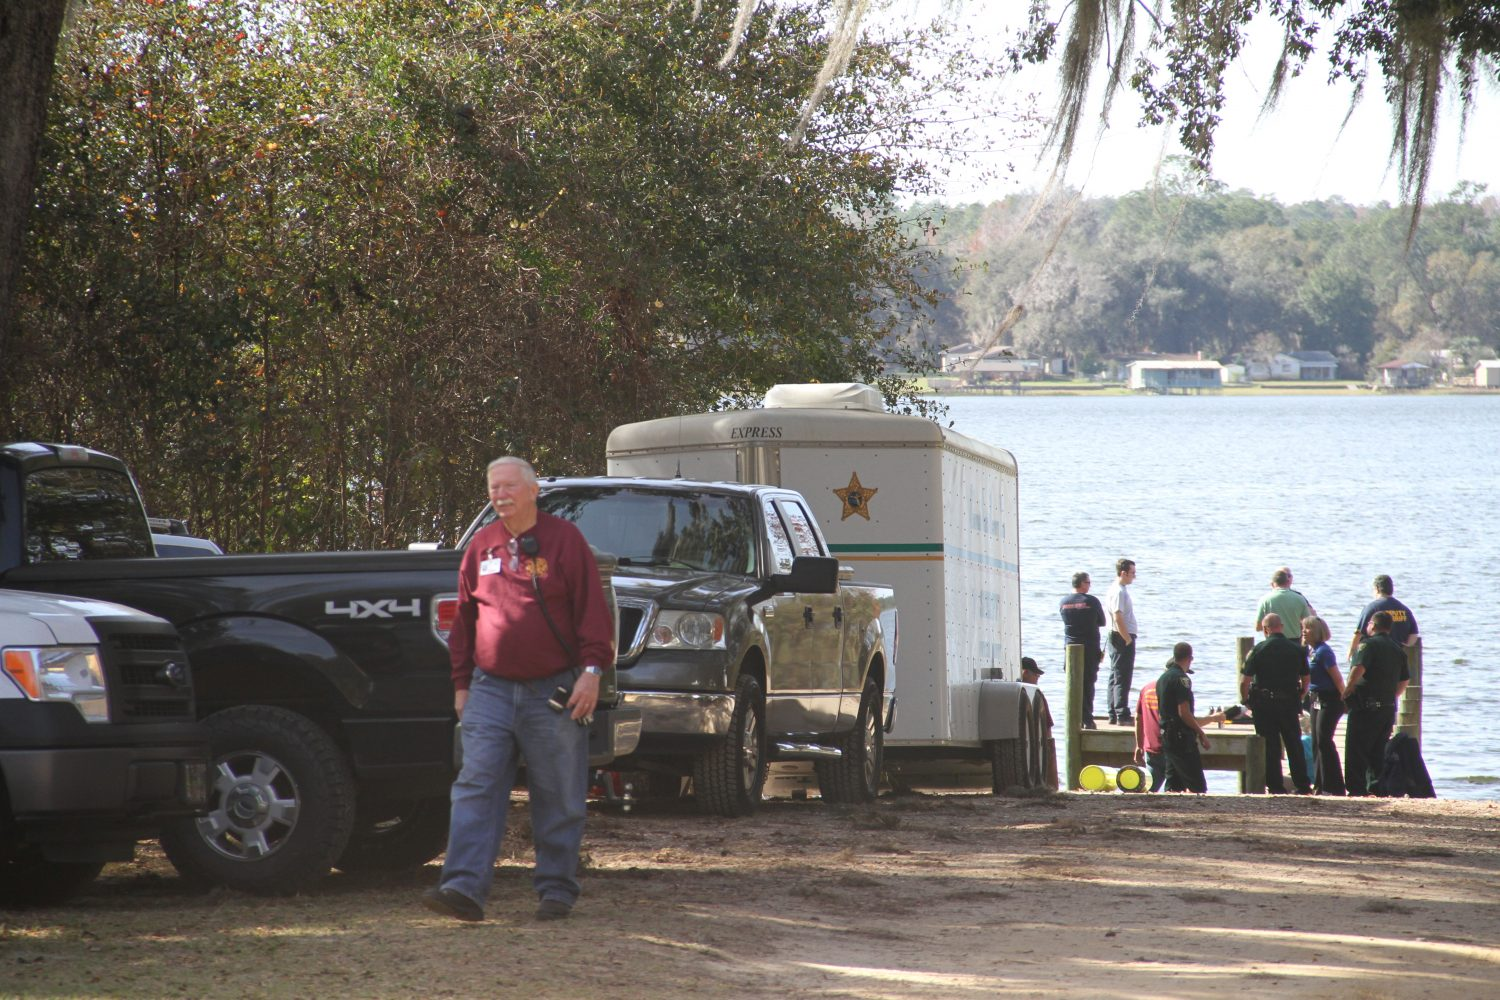 Authorities assemble on the lake's public boat ramp this afternoon. (Eric Heubusch/WUFT News)